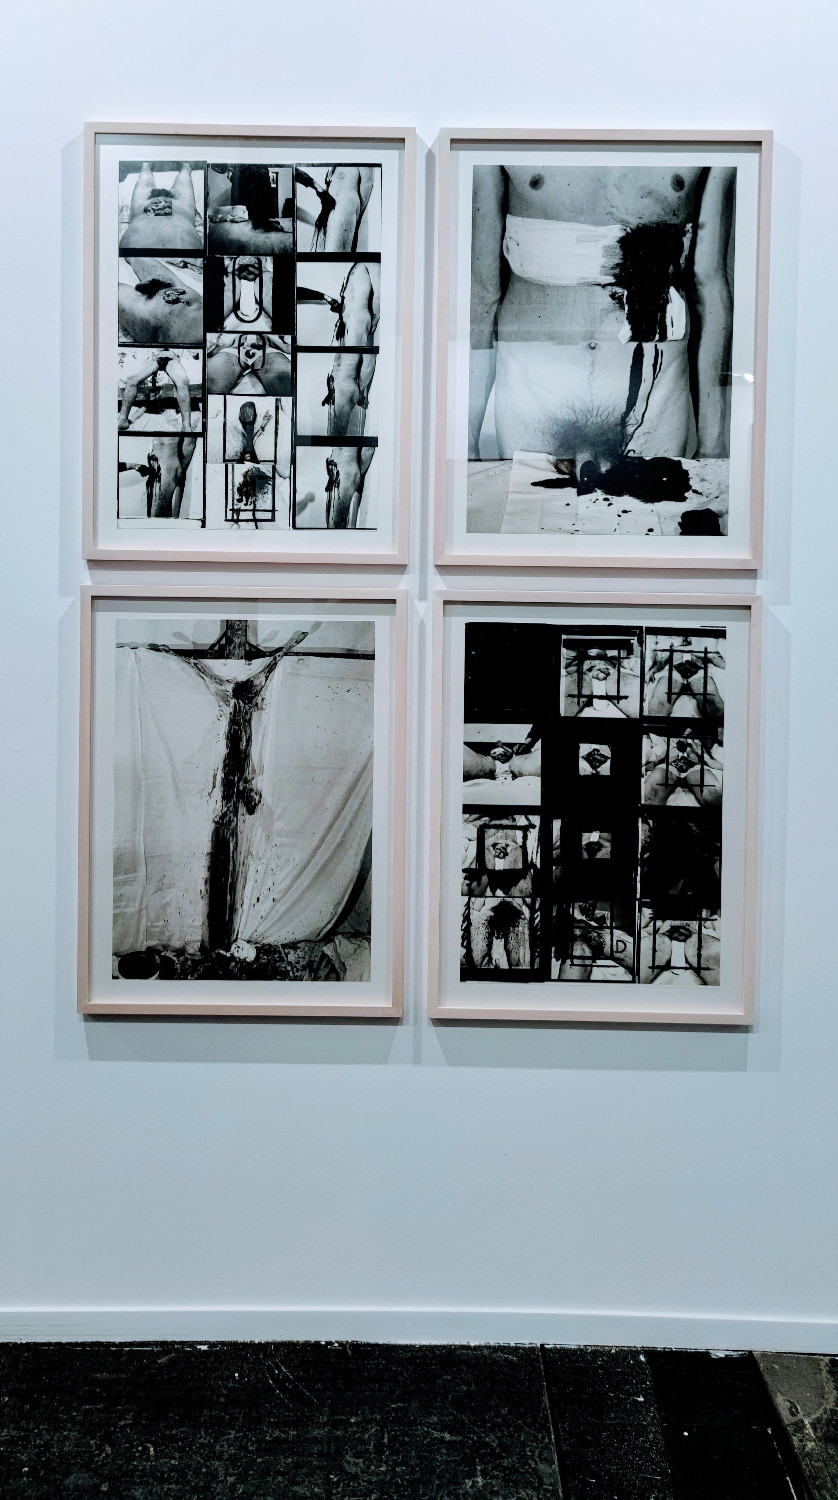 Hermann Nitsch, action penis irrigations, 1960's